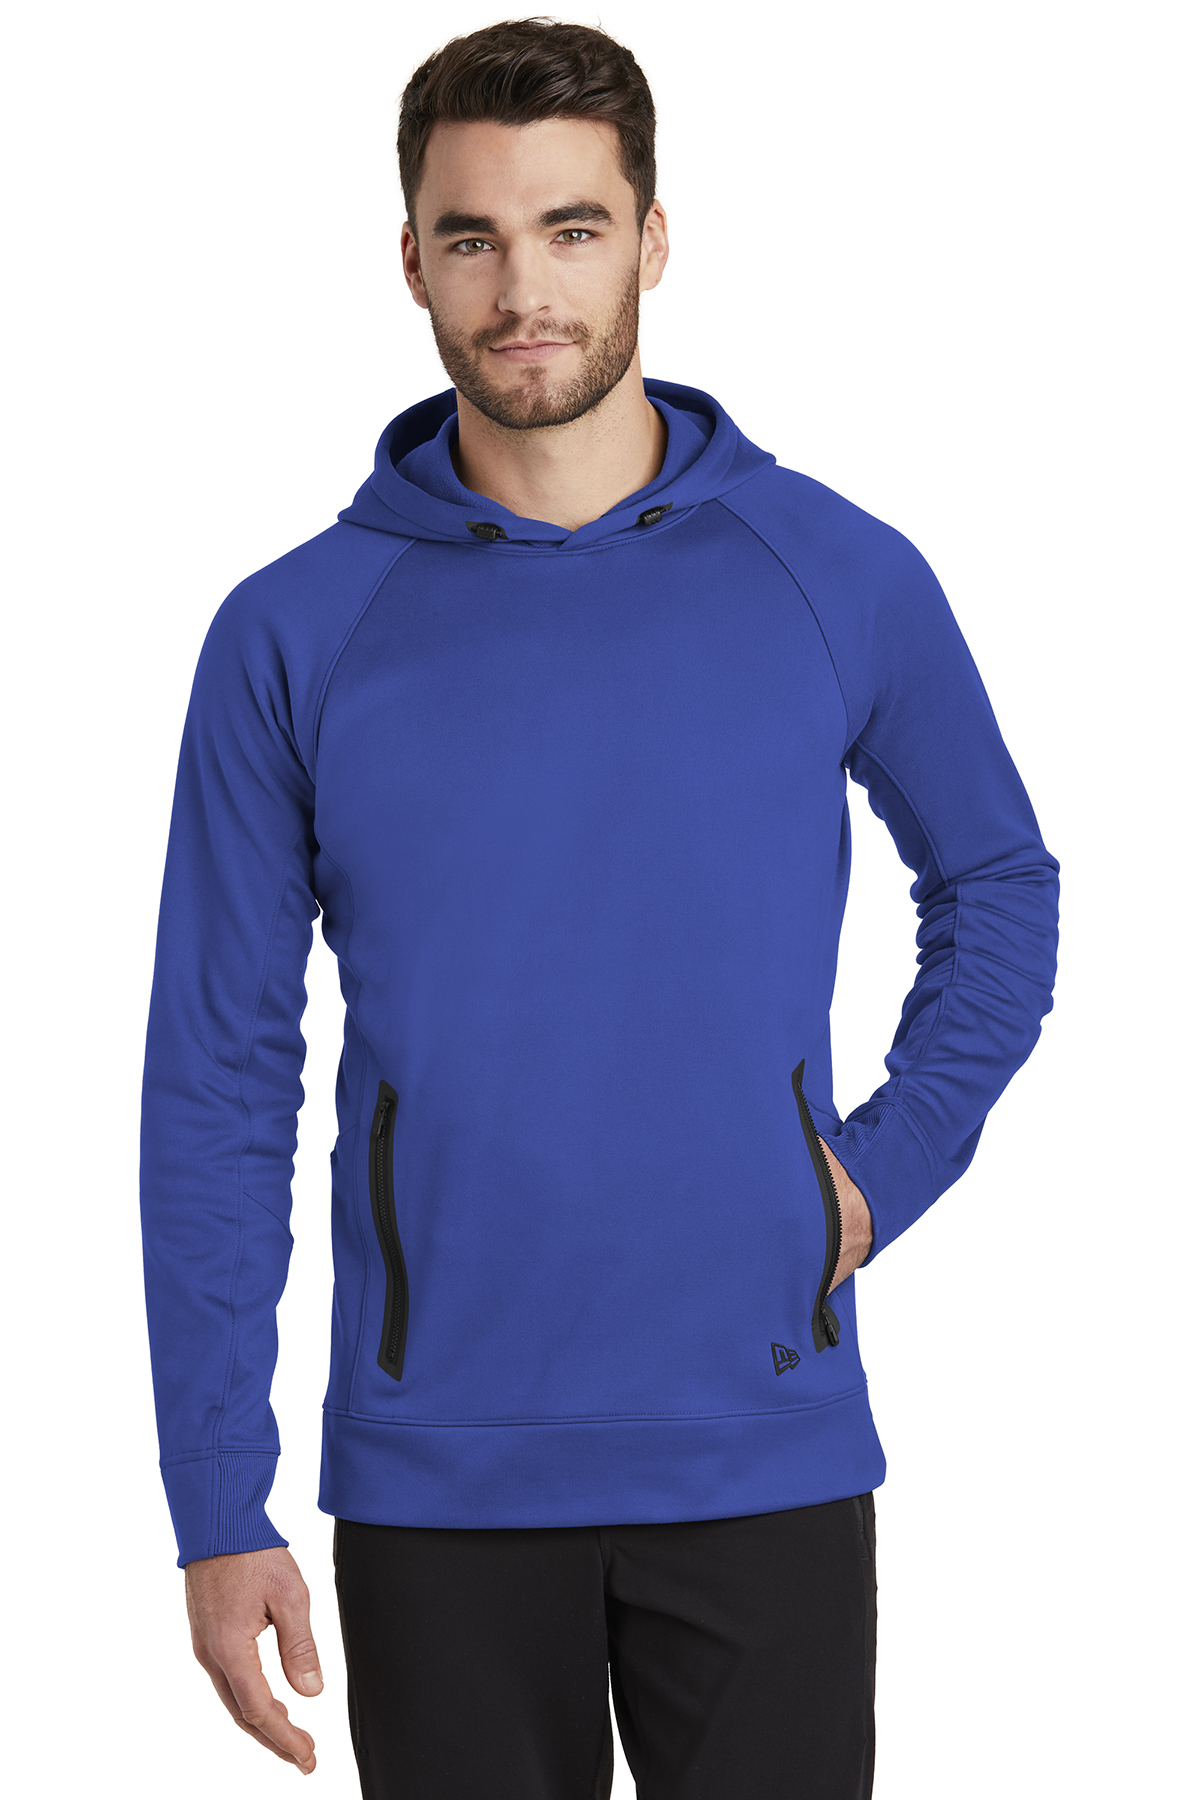 New Era NEA520 - Men's Venue Fleece Pullover Hoodie